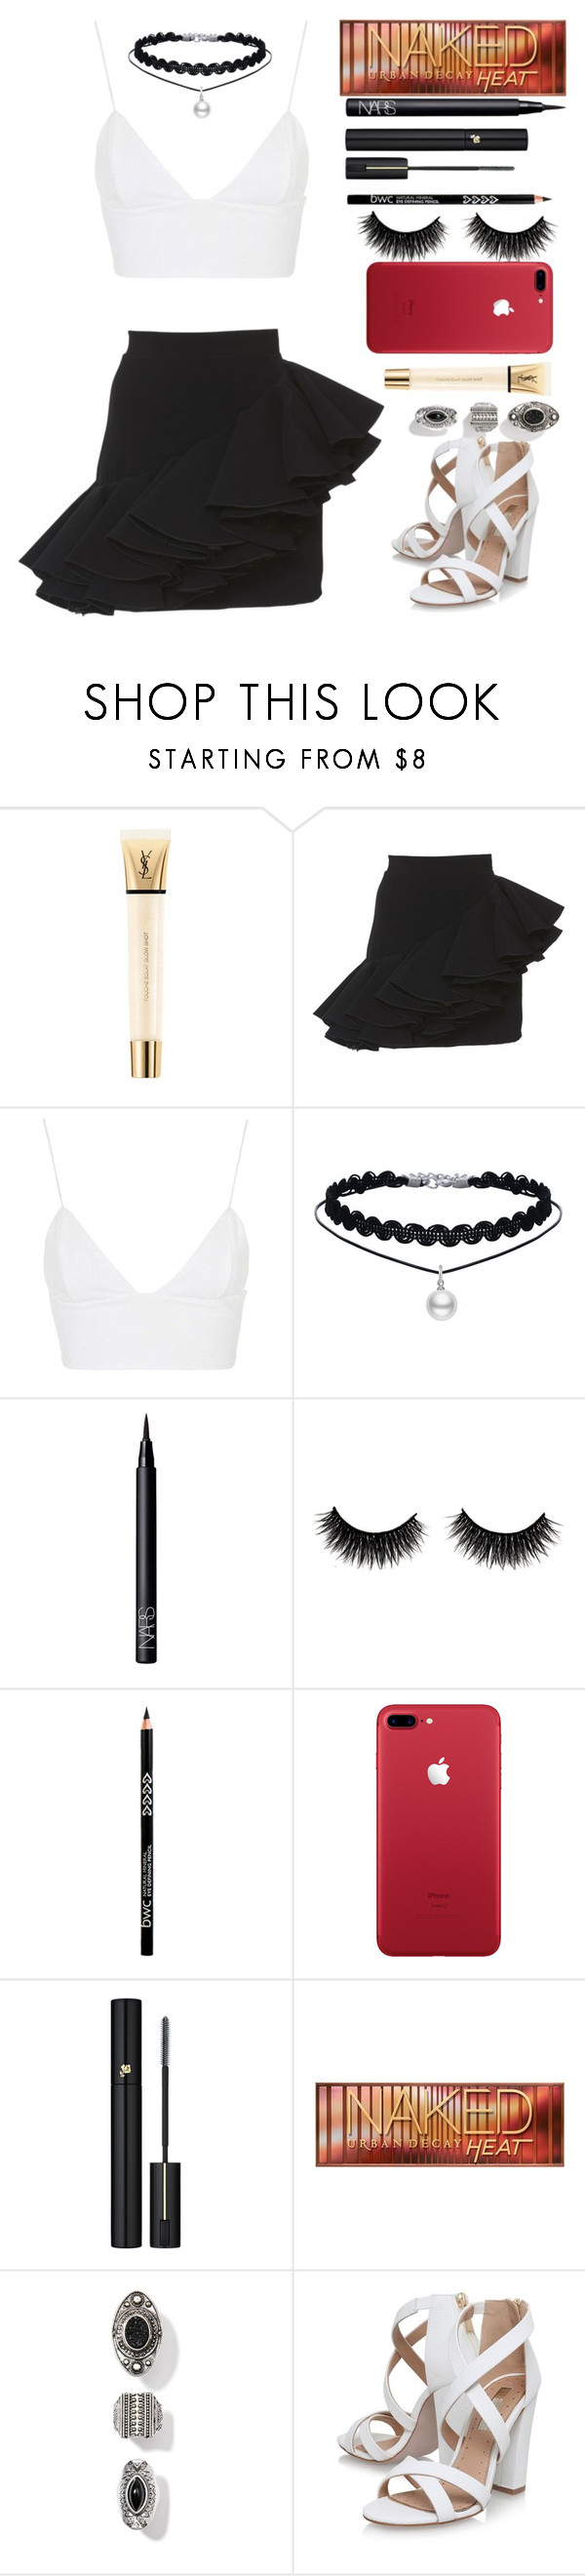 """Night"" by tutu-81 ❤ liked on Polyvore featuring Yves Saint Laurent, Balmain, Rare London, NARS Cosmetics, Lancôme, Urban Decay and Miss KG"